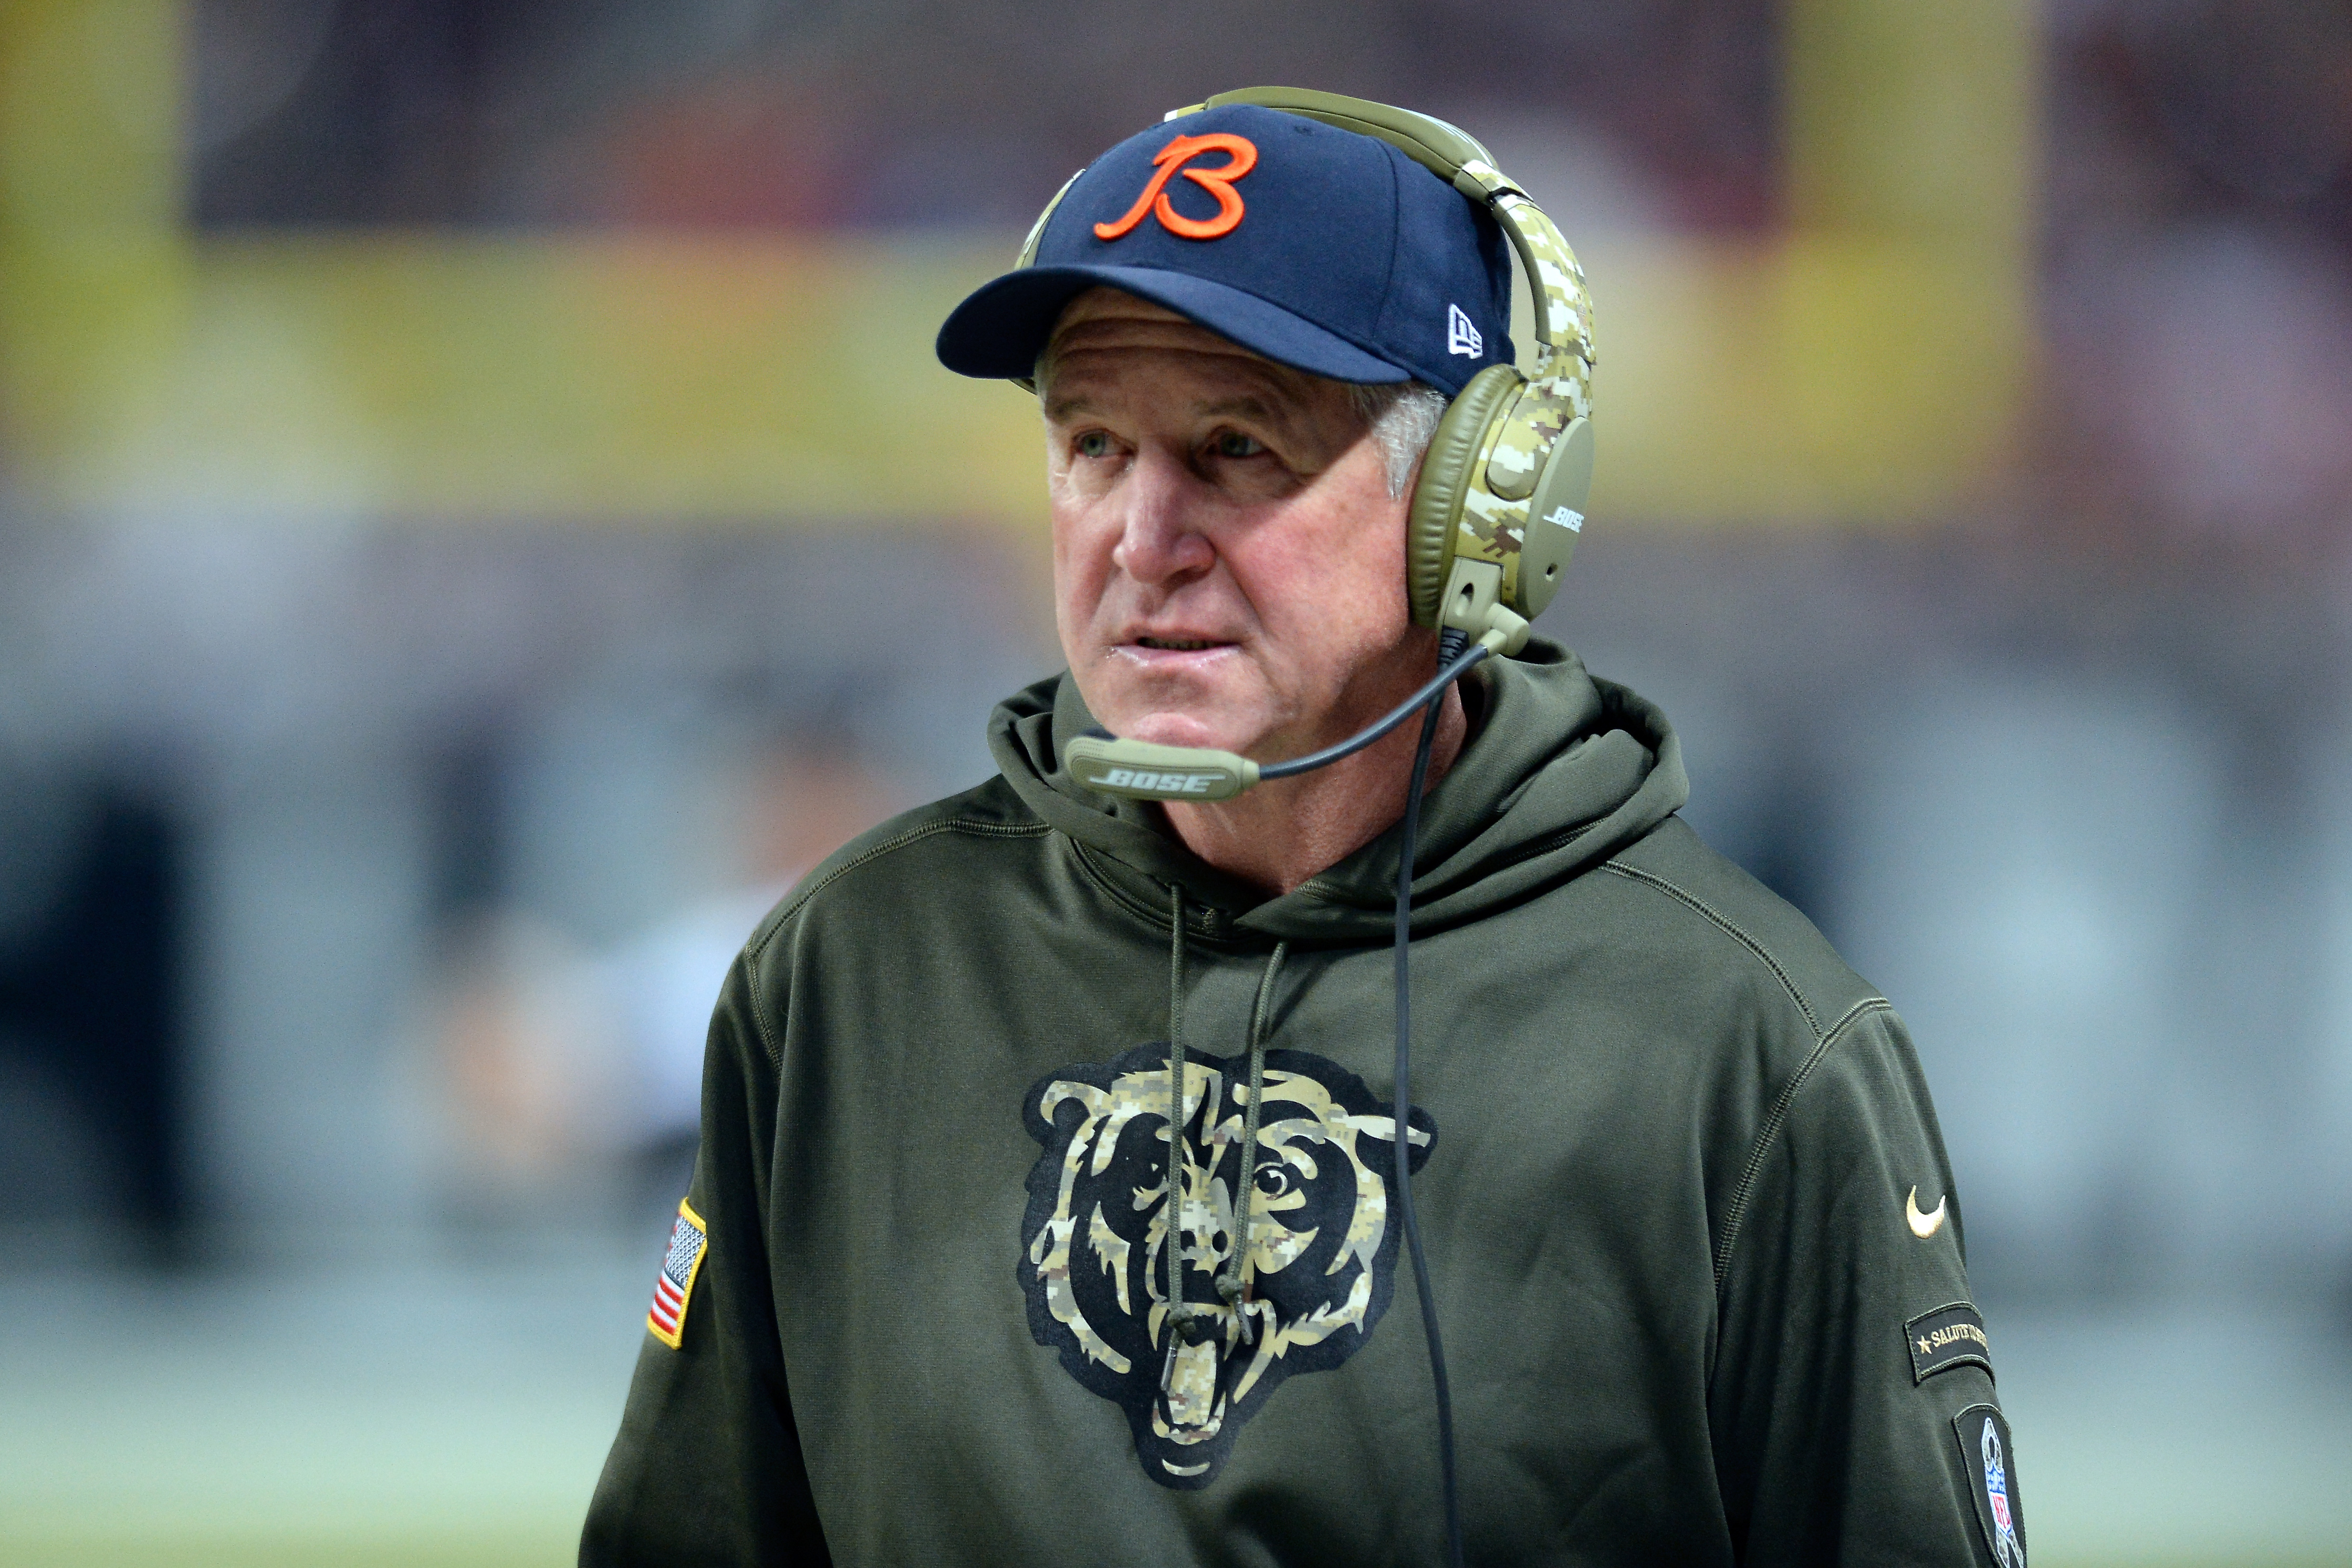 ST. LOUIS, MO - NOVEMBER 15: Head coach John Fox of the Chicago Bears watches from the sideline in the third quarter against the St. Louis Rams at the Edward Jones Dome on November 15, 2015 in St. Louis, Missouri. (Photo by Michael B. Thomas/Getty Images)